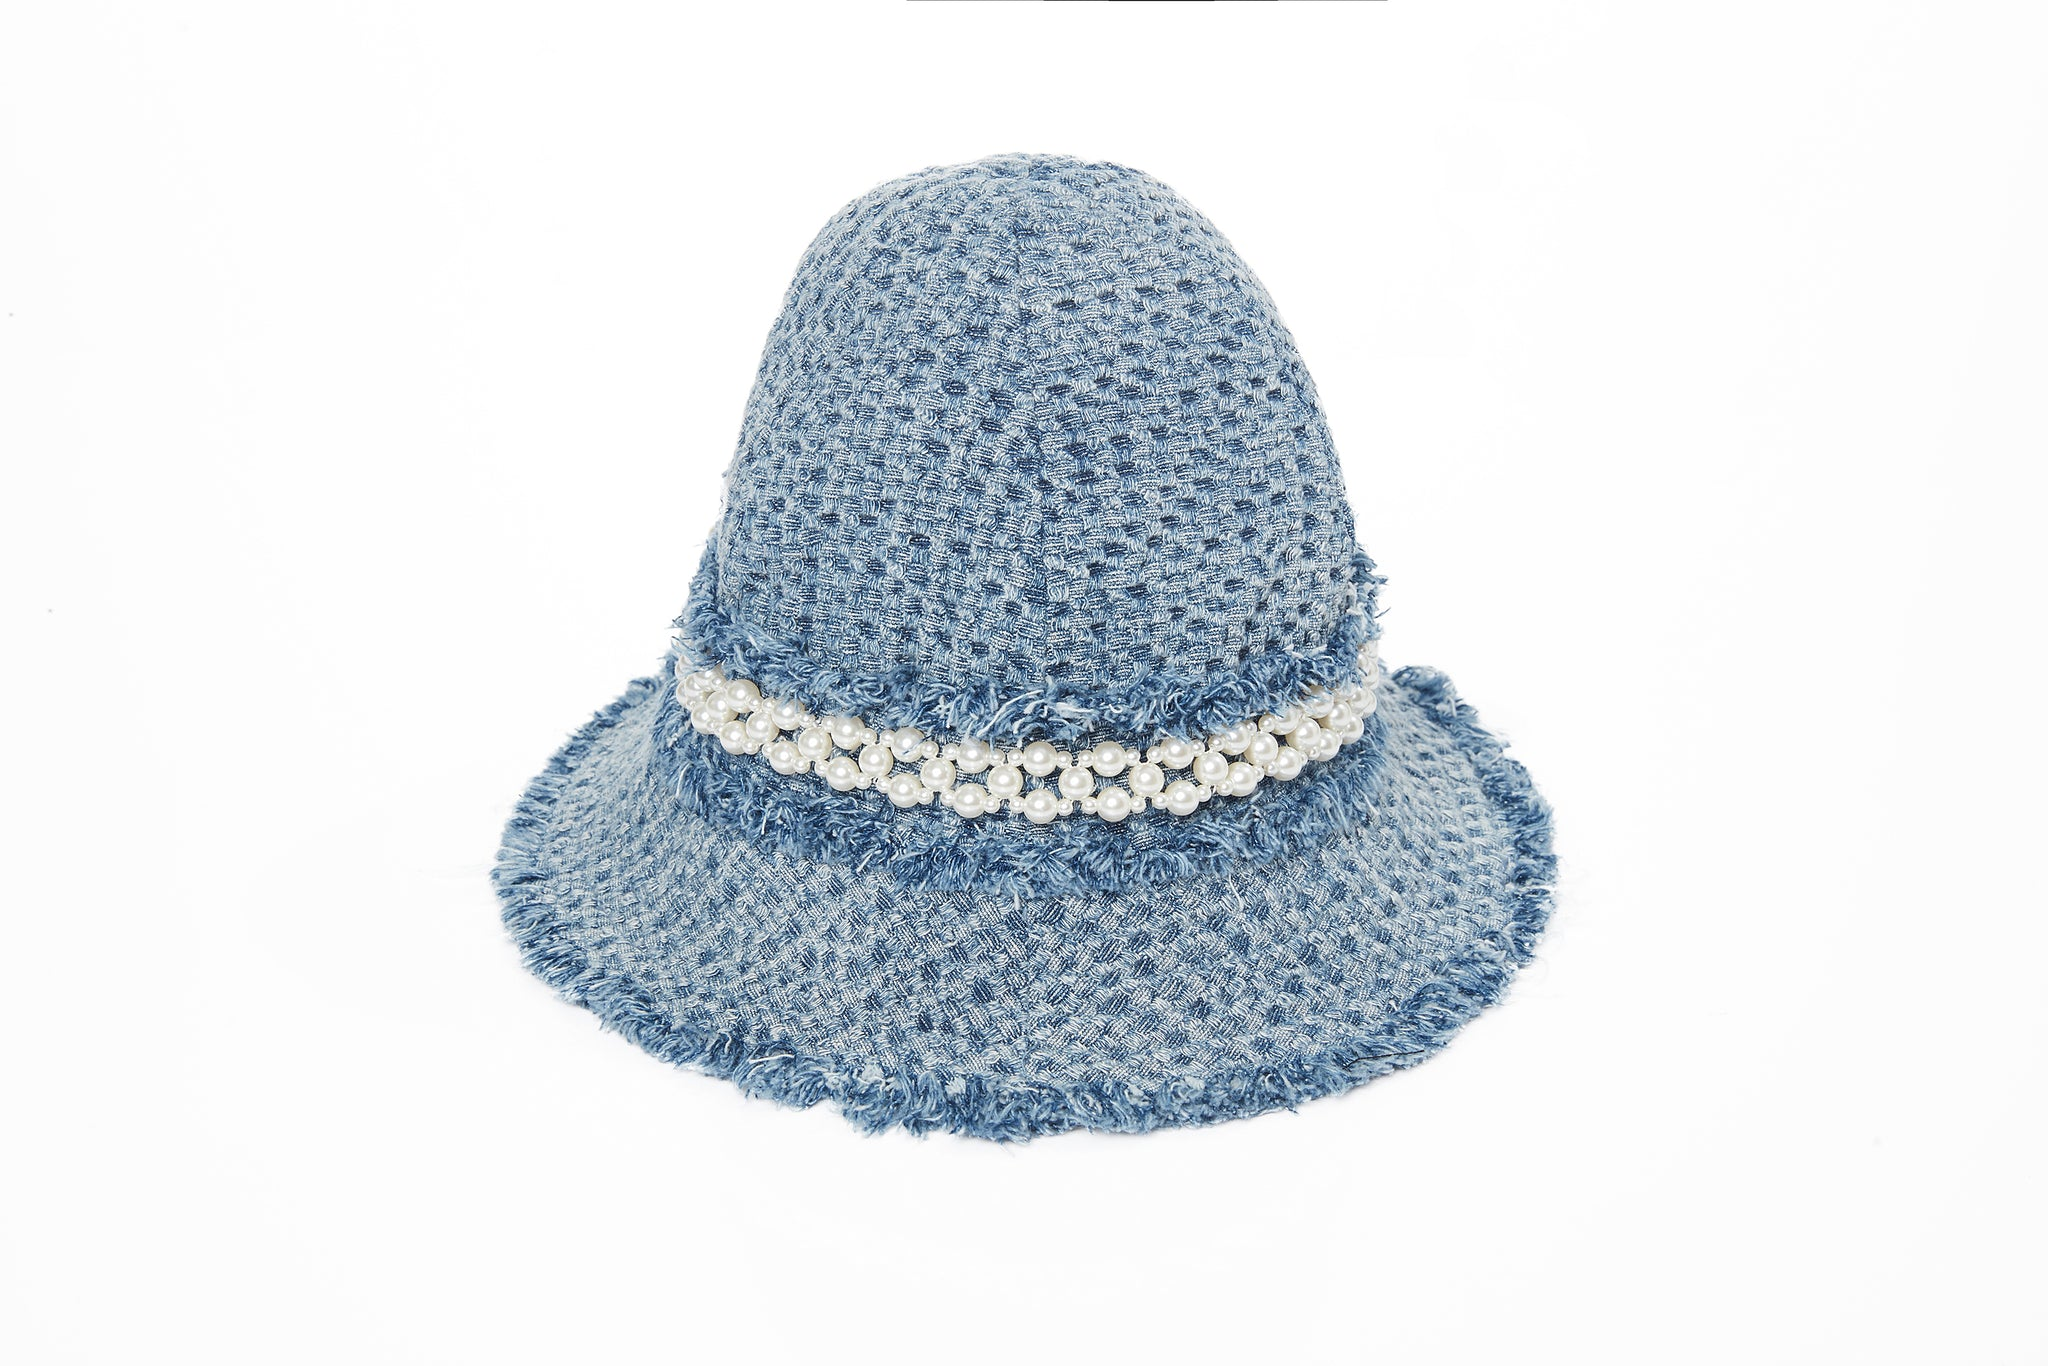 Frayed Denim Bucket Hat with Pearl Embellishment, Light Blue